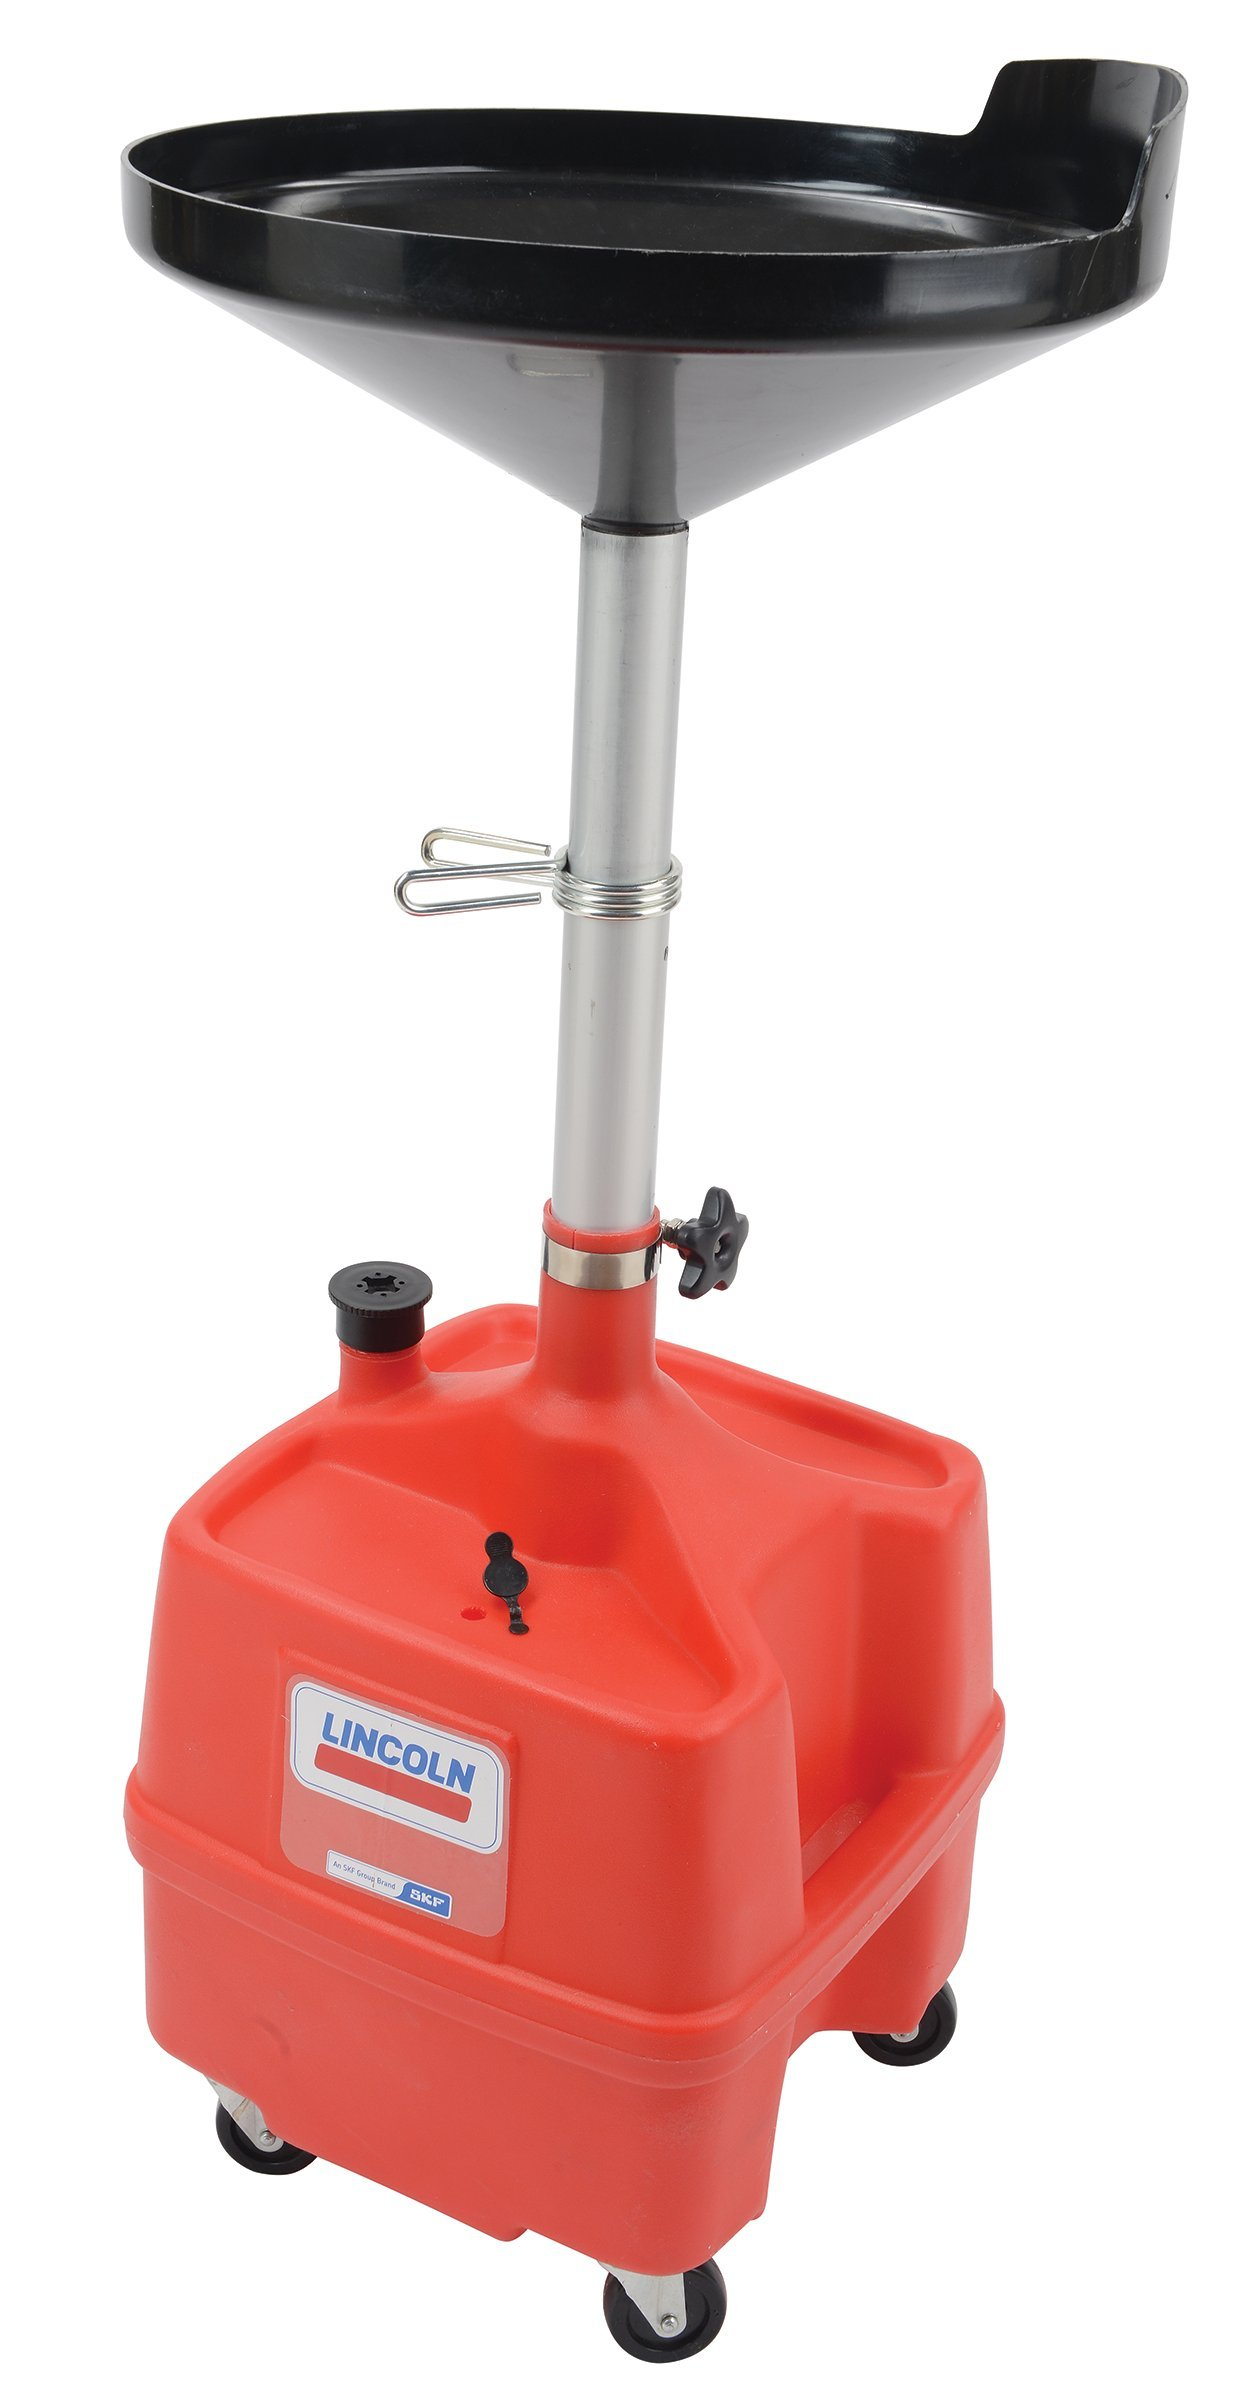 Lincoln LIN3508 Portable Oil Drain, Plastic, 8 gal. by Lincoln Electric